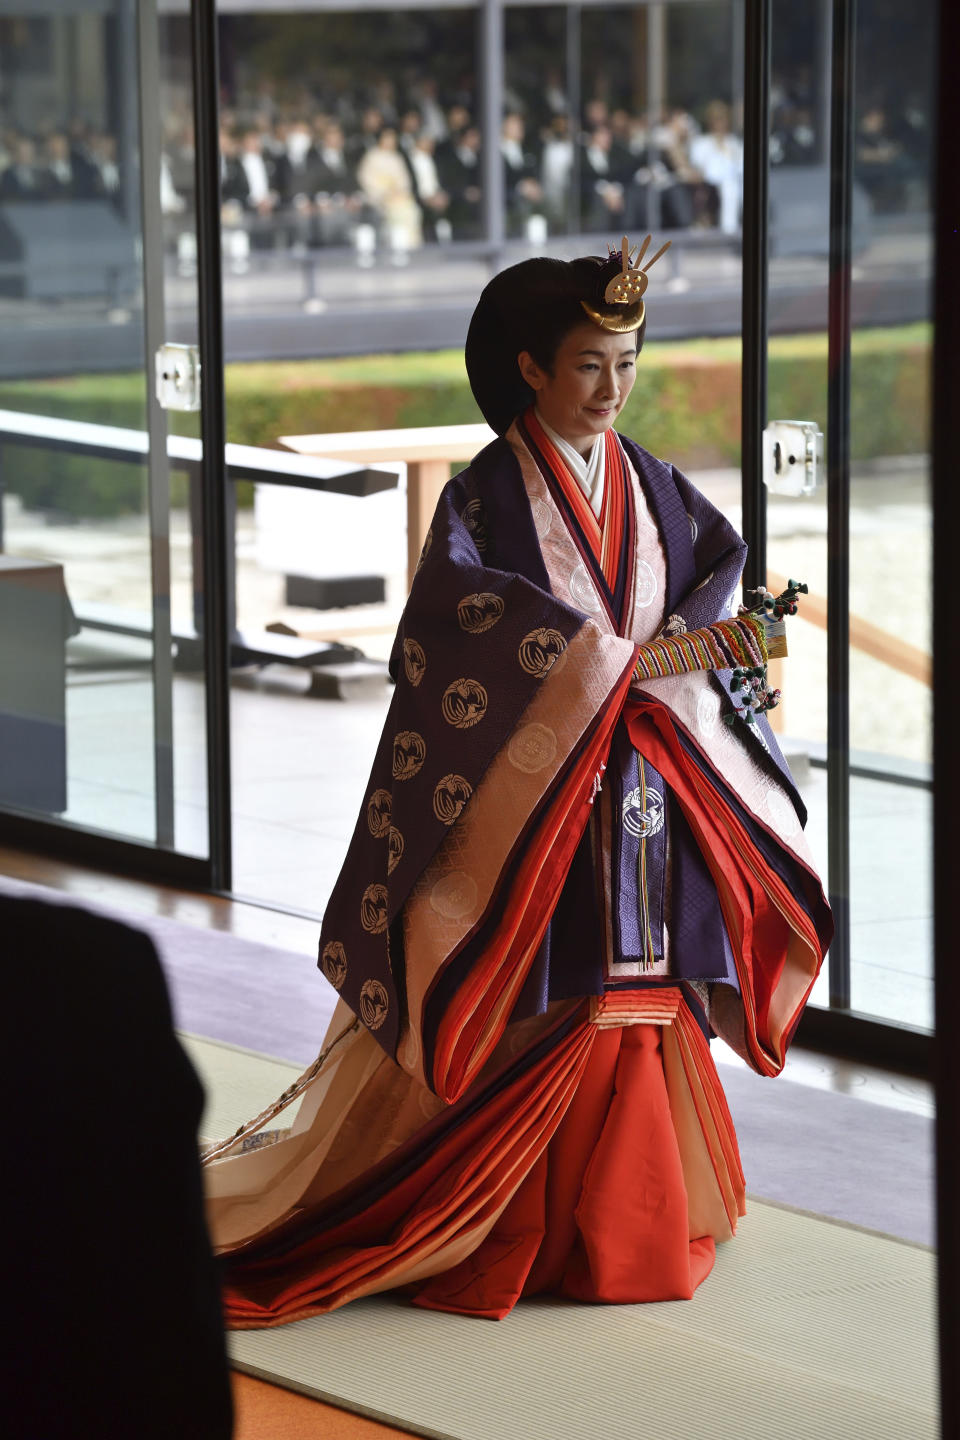 Japan's Crown Princess Kiko leaves at the end of the enthronement ceremony where Emperor Naruhito officially proclaimed his ascension to the Chrysanthemum Throne at the Imperial Palace in Tokyo, Tuesday, Oct. 22, 2019. (Kazuhiro Nogi/Pool Photo via AP)